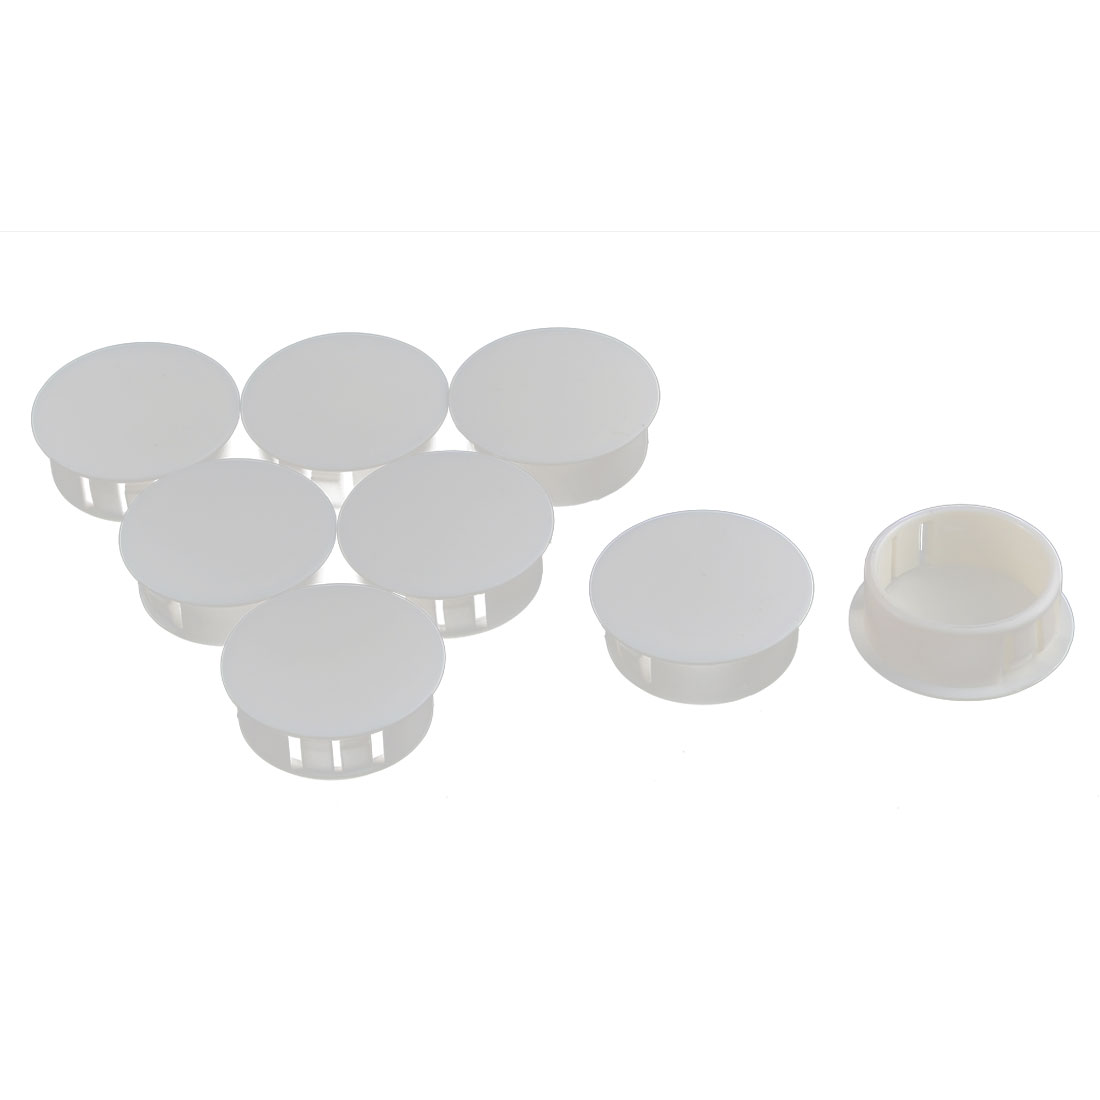 Door Window Plastic Mounting Locking Hole Plugs Button Cover White 8pcs